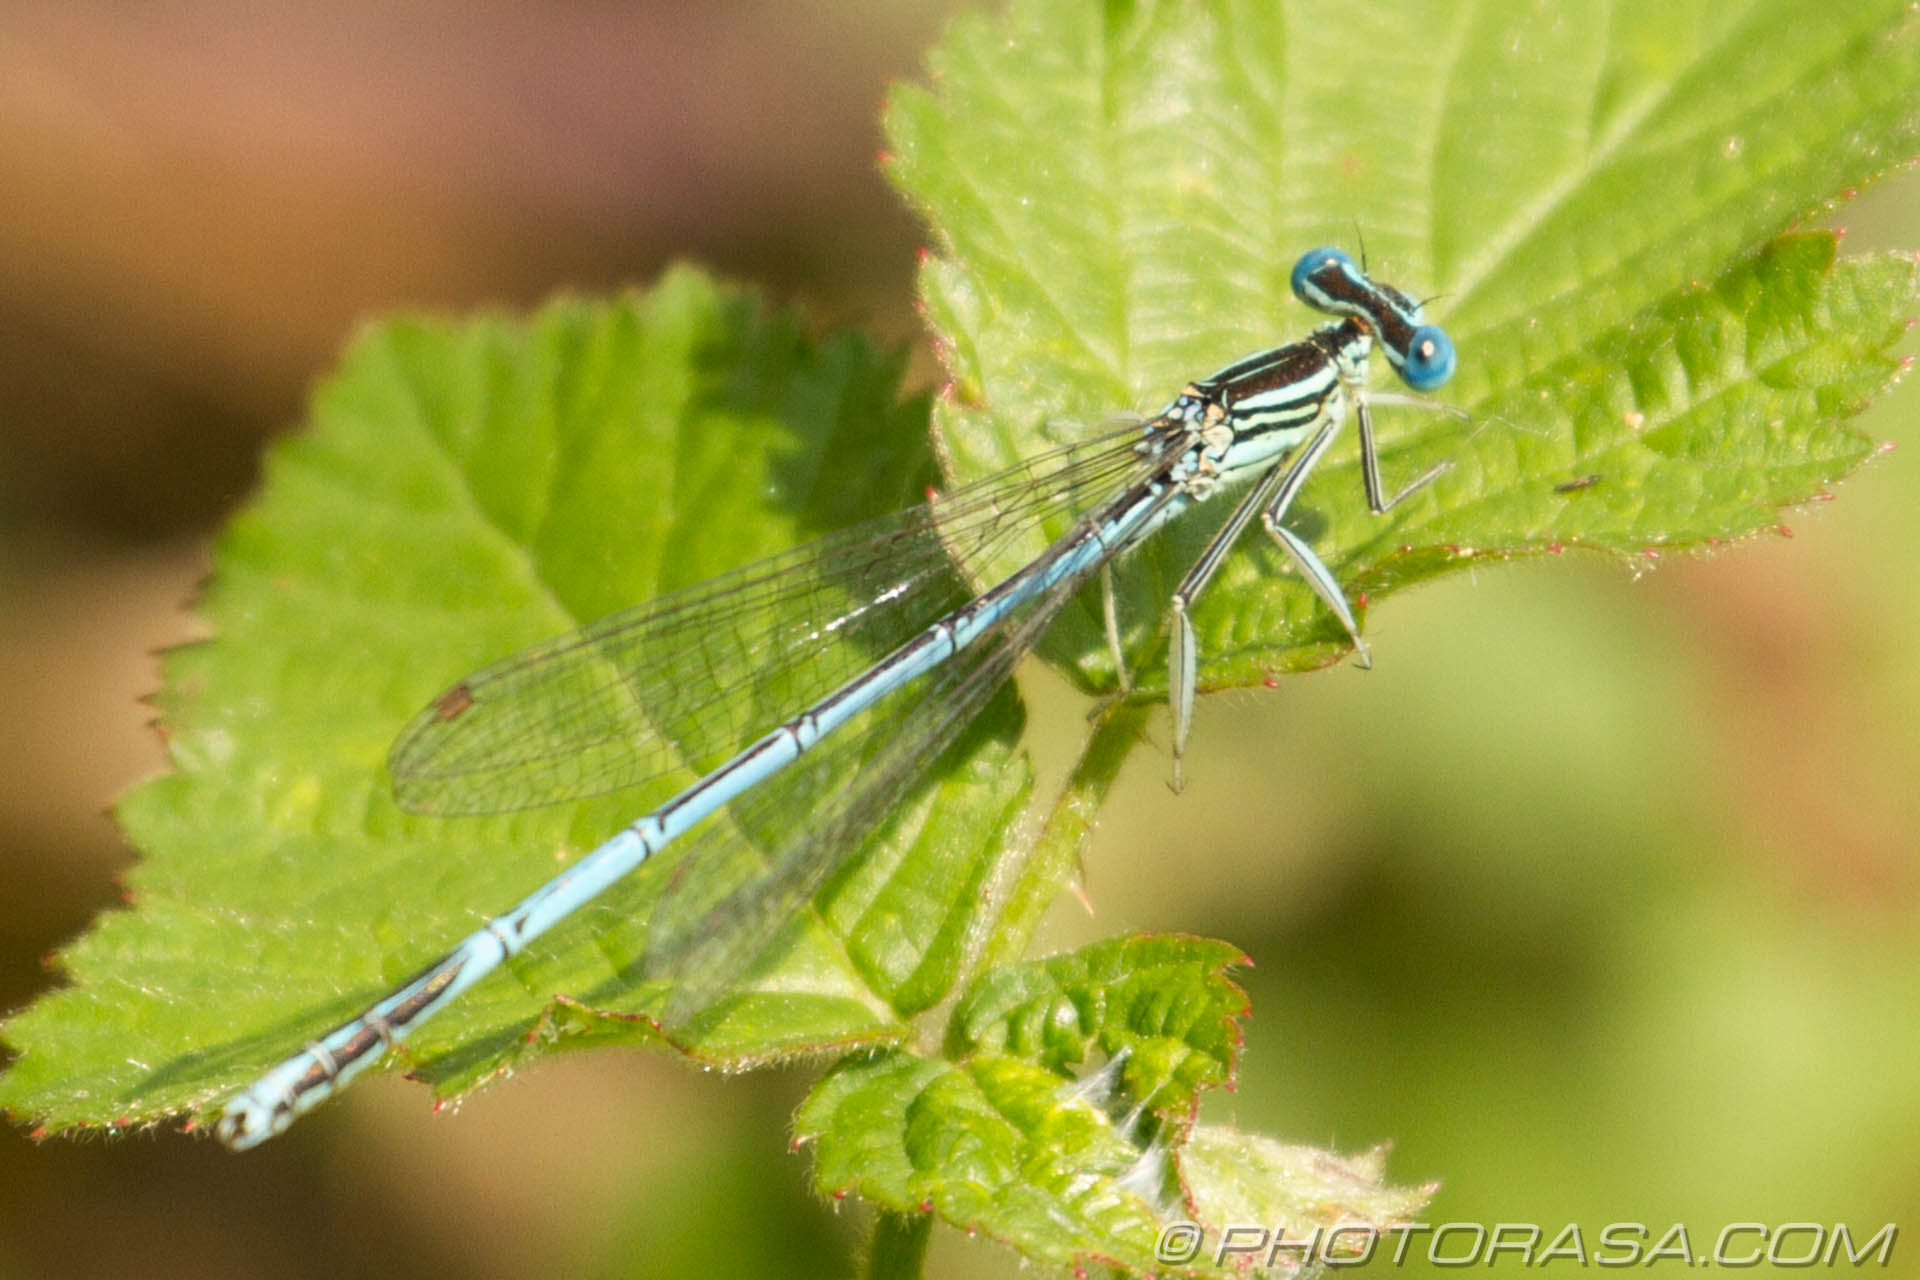 https://photorasa.com/damselflies/blue-and-black-damselfly/